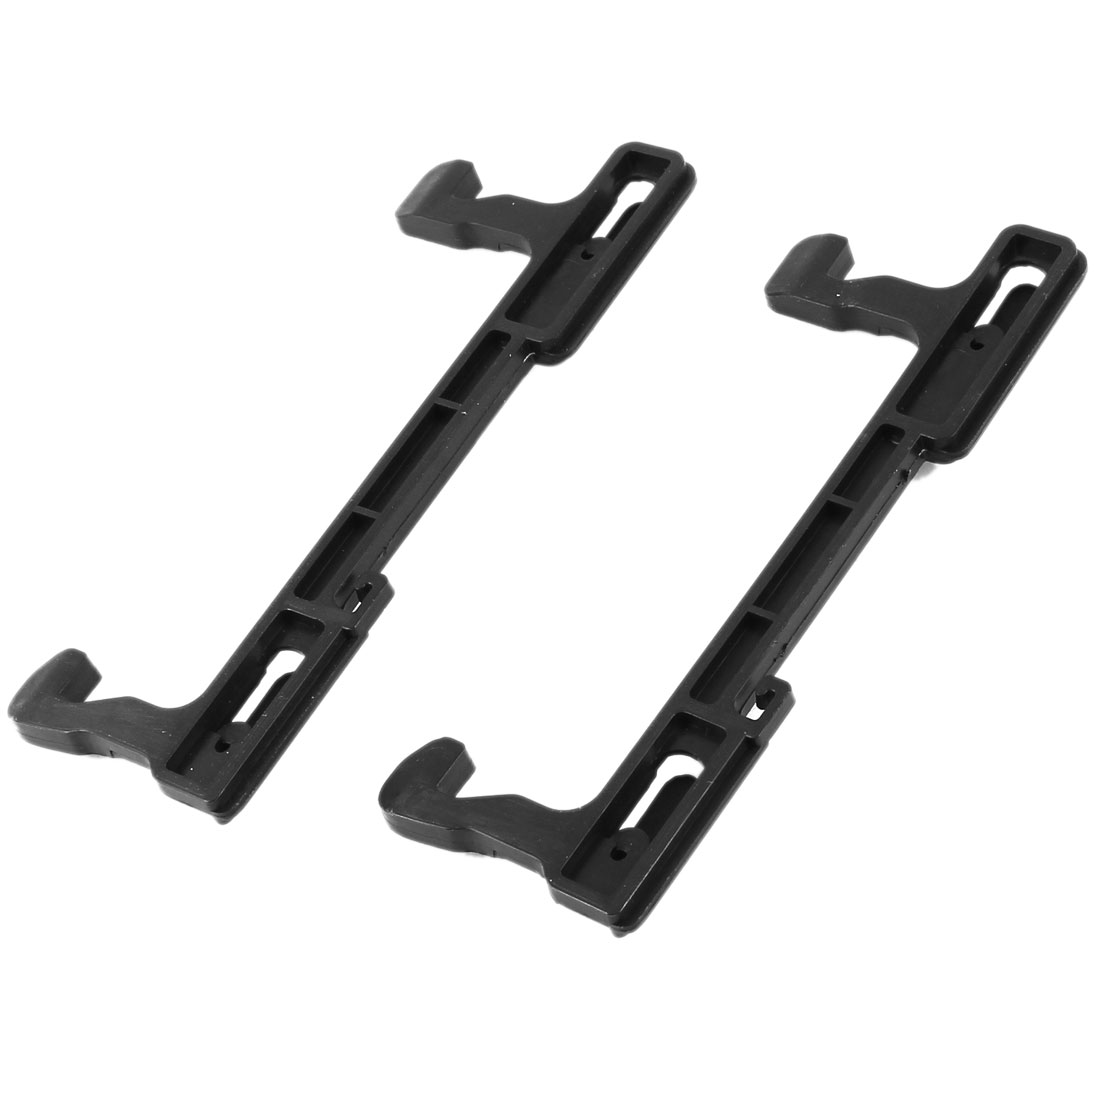 Kitchen Black Plastic Microwave Oven Door Latch 13.2cm Long 2 Pcs for Galanz